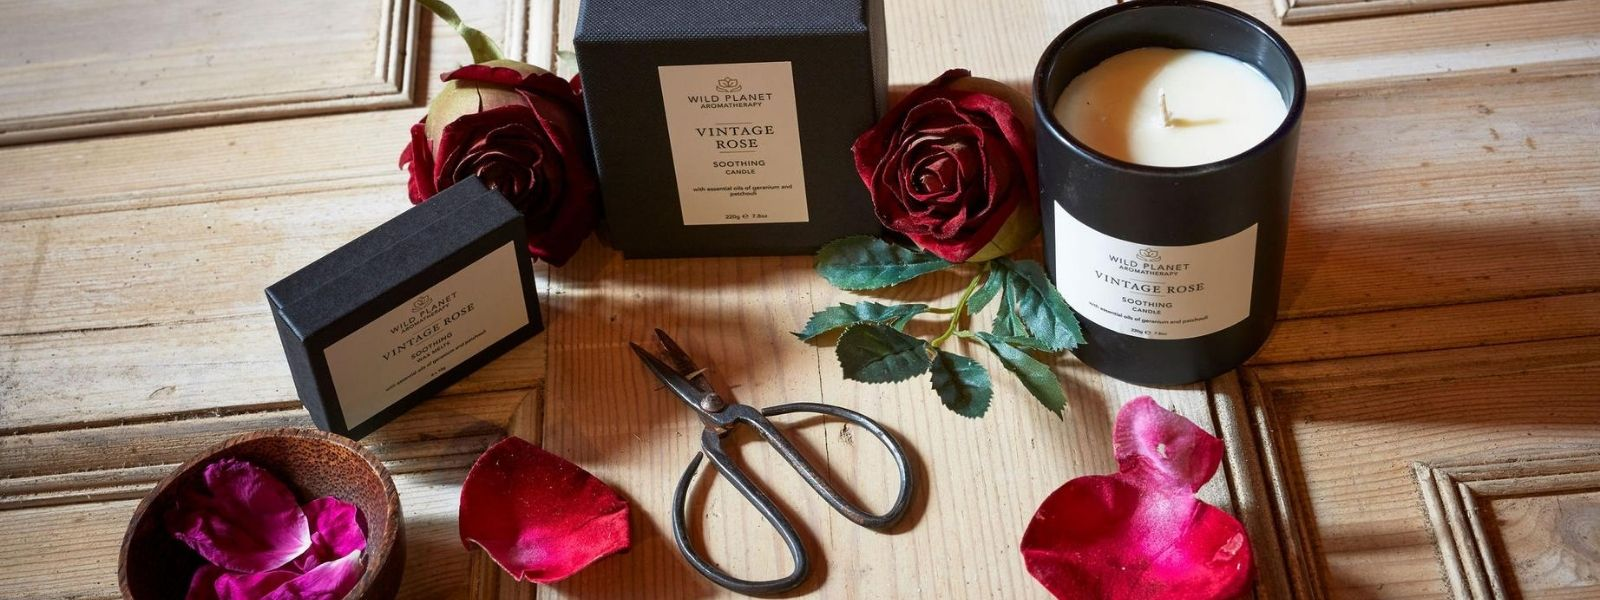 Vintage Rose Candle and box of wax melts on wooden table next to vintage scissors and rose petals in wooden bowl